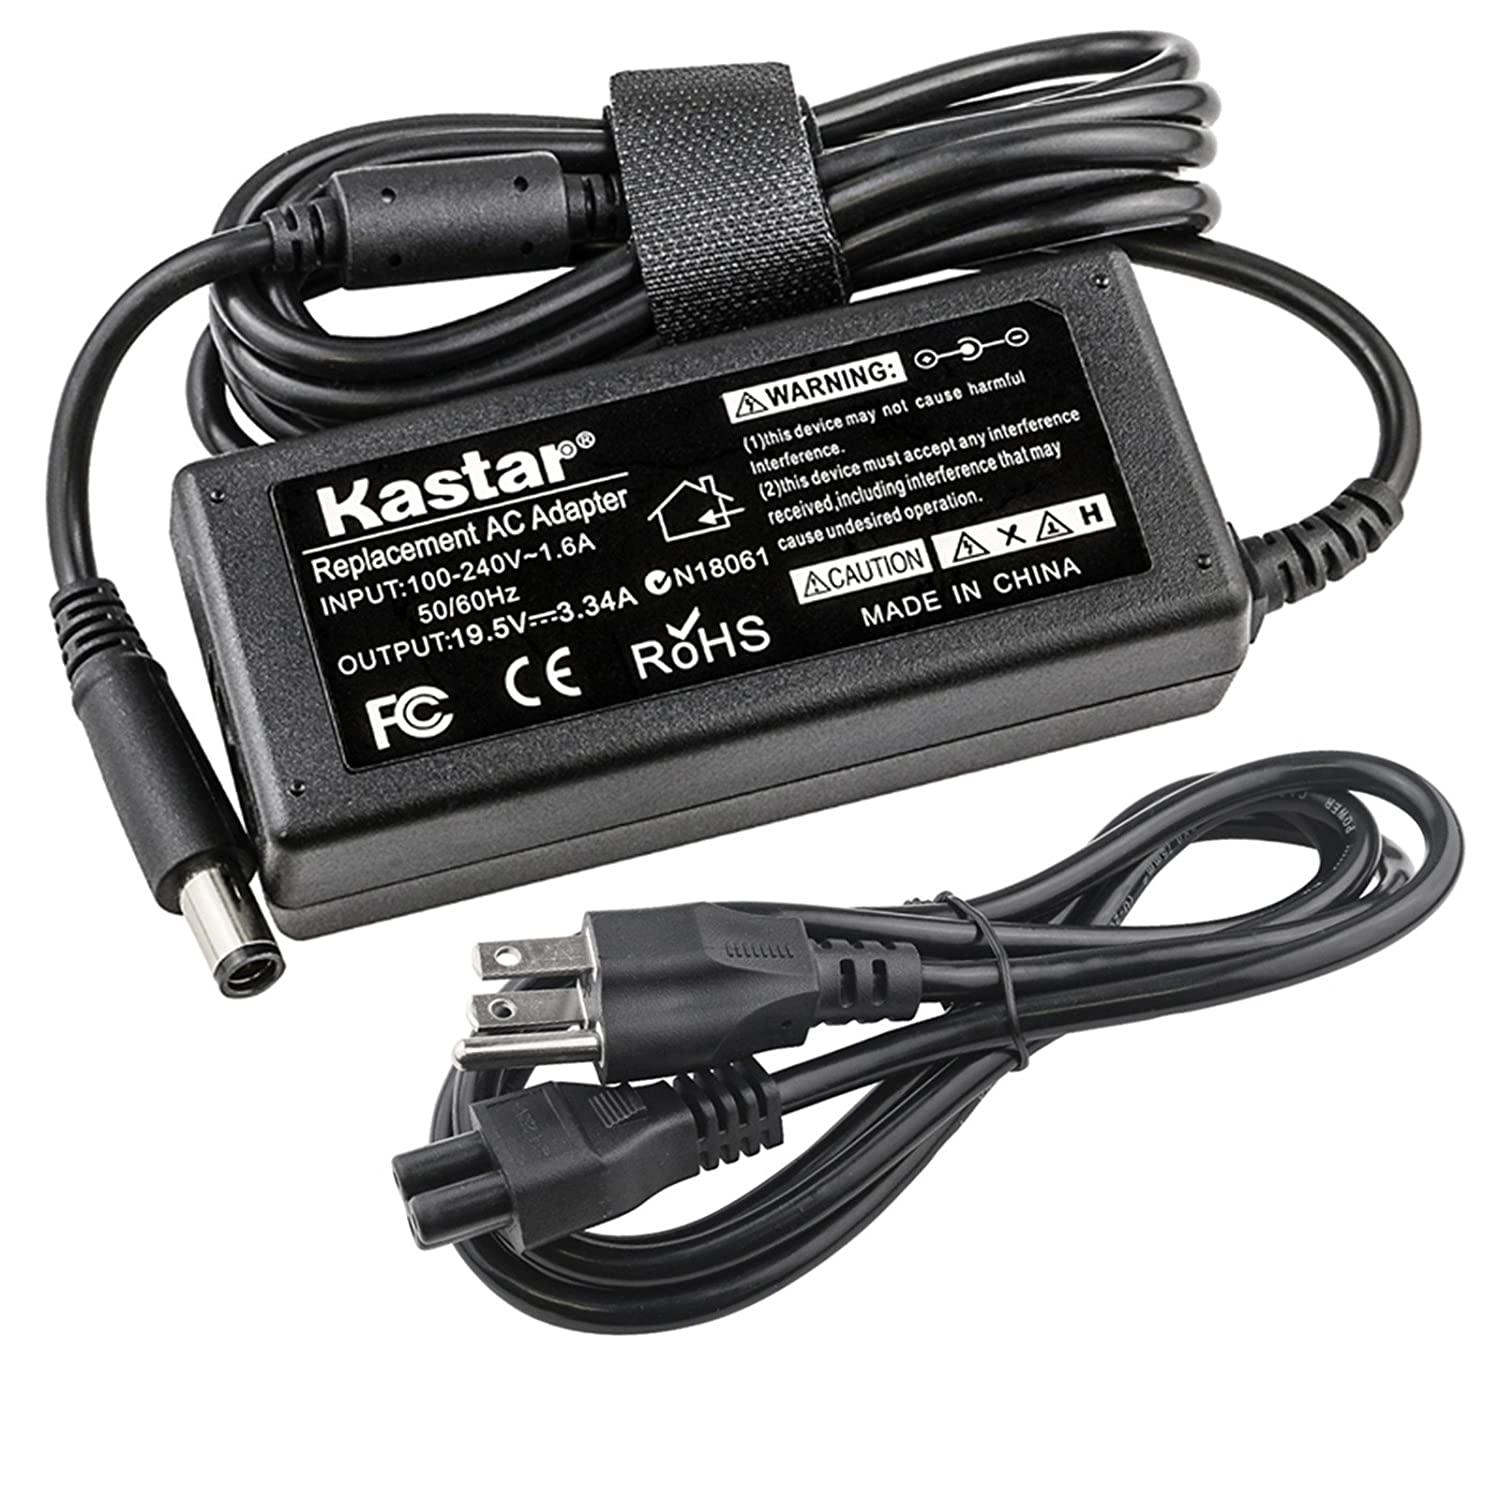 Kastar Replacement AC Adapter for PA-12 Dell Laptop PA-1650-05D2 U7088 F7970 N2765 AA22850 PA-1650-05D 310-4408 1X917 310-2860 5u092 PADL012 Inspriron ...